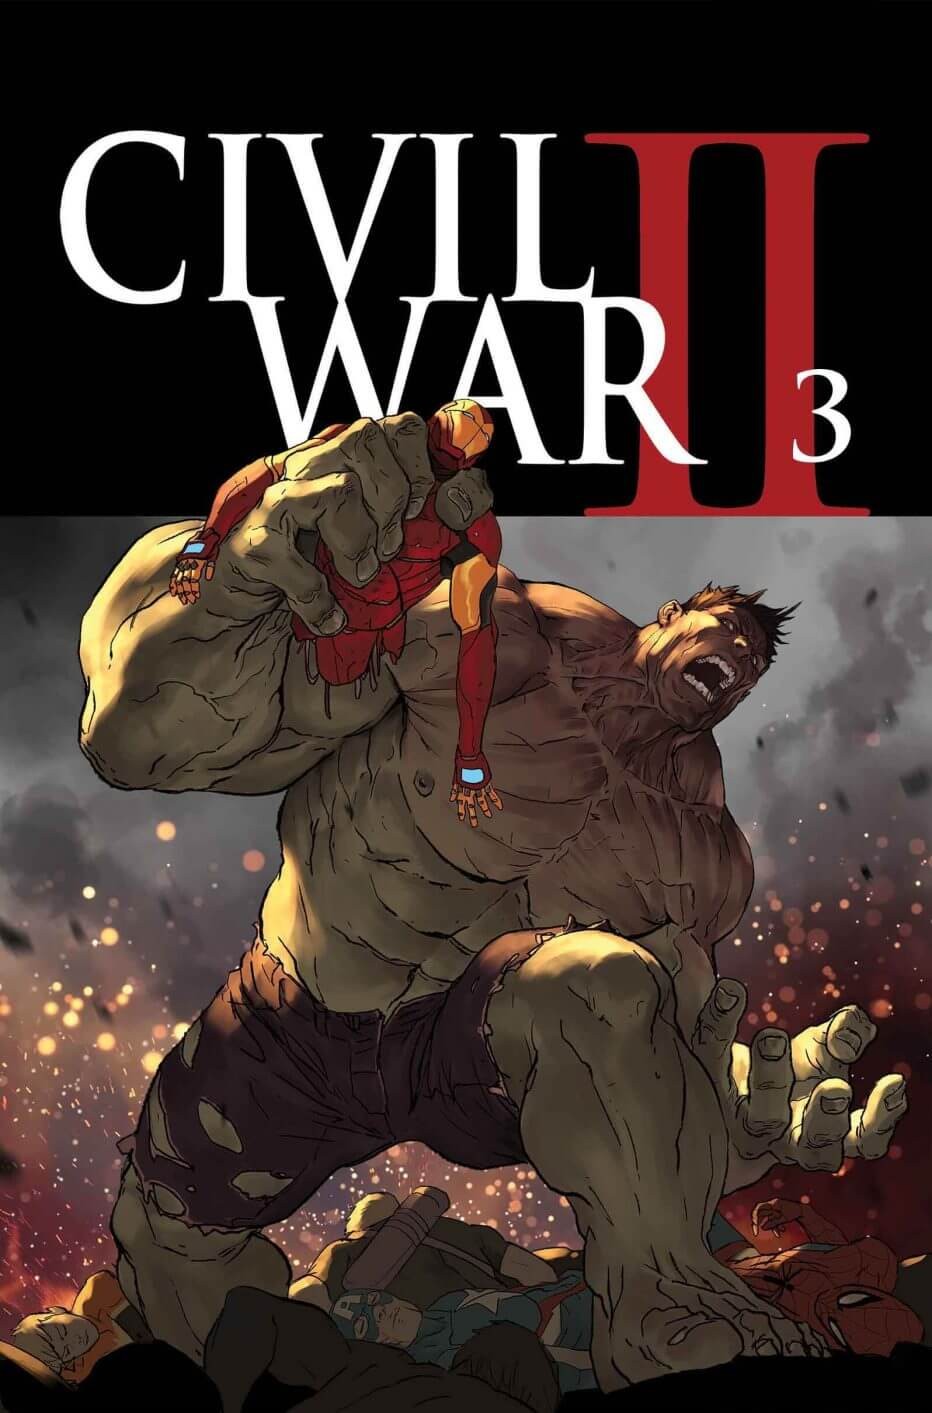 a-huge-a-list-marvel-character-was-just-killed-in-civil-war-ii5